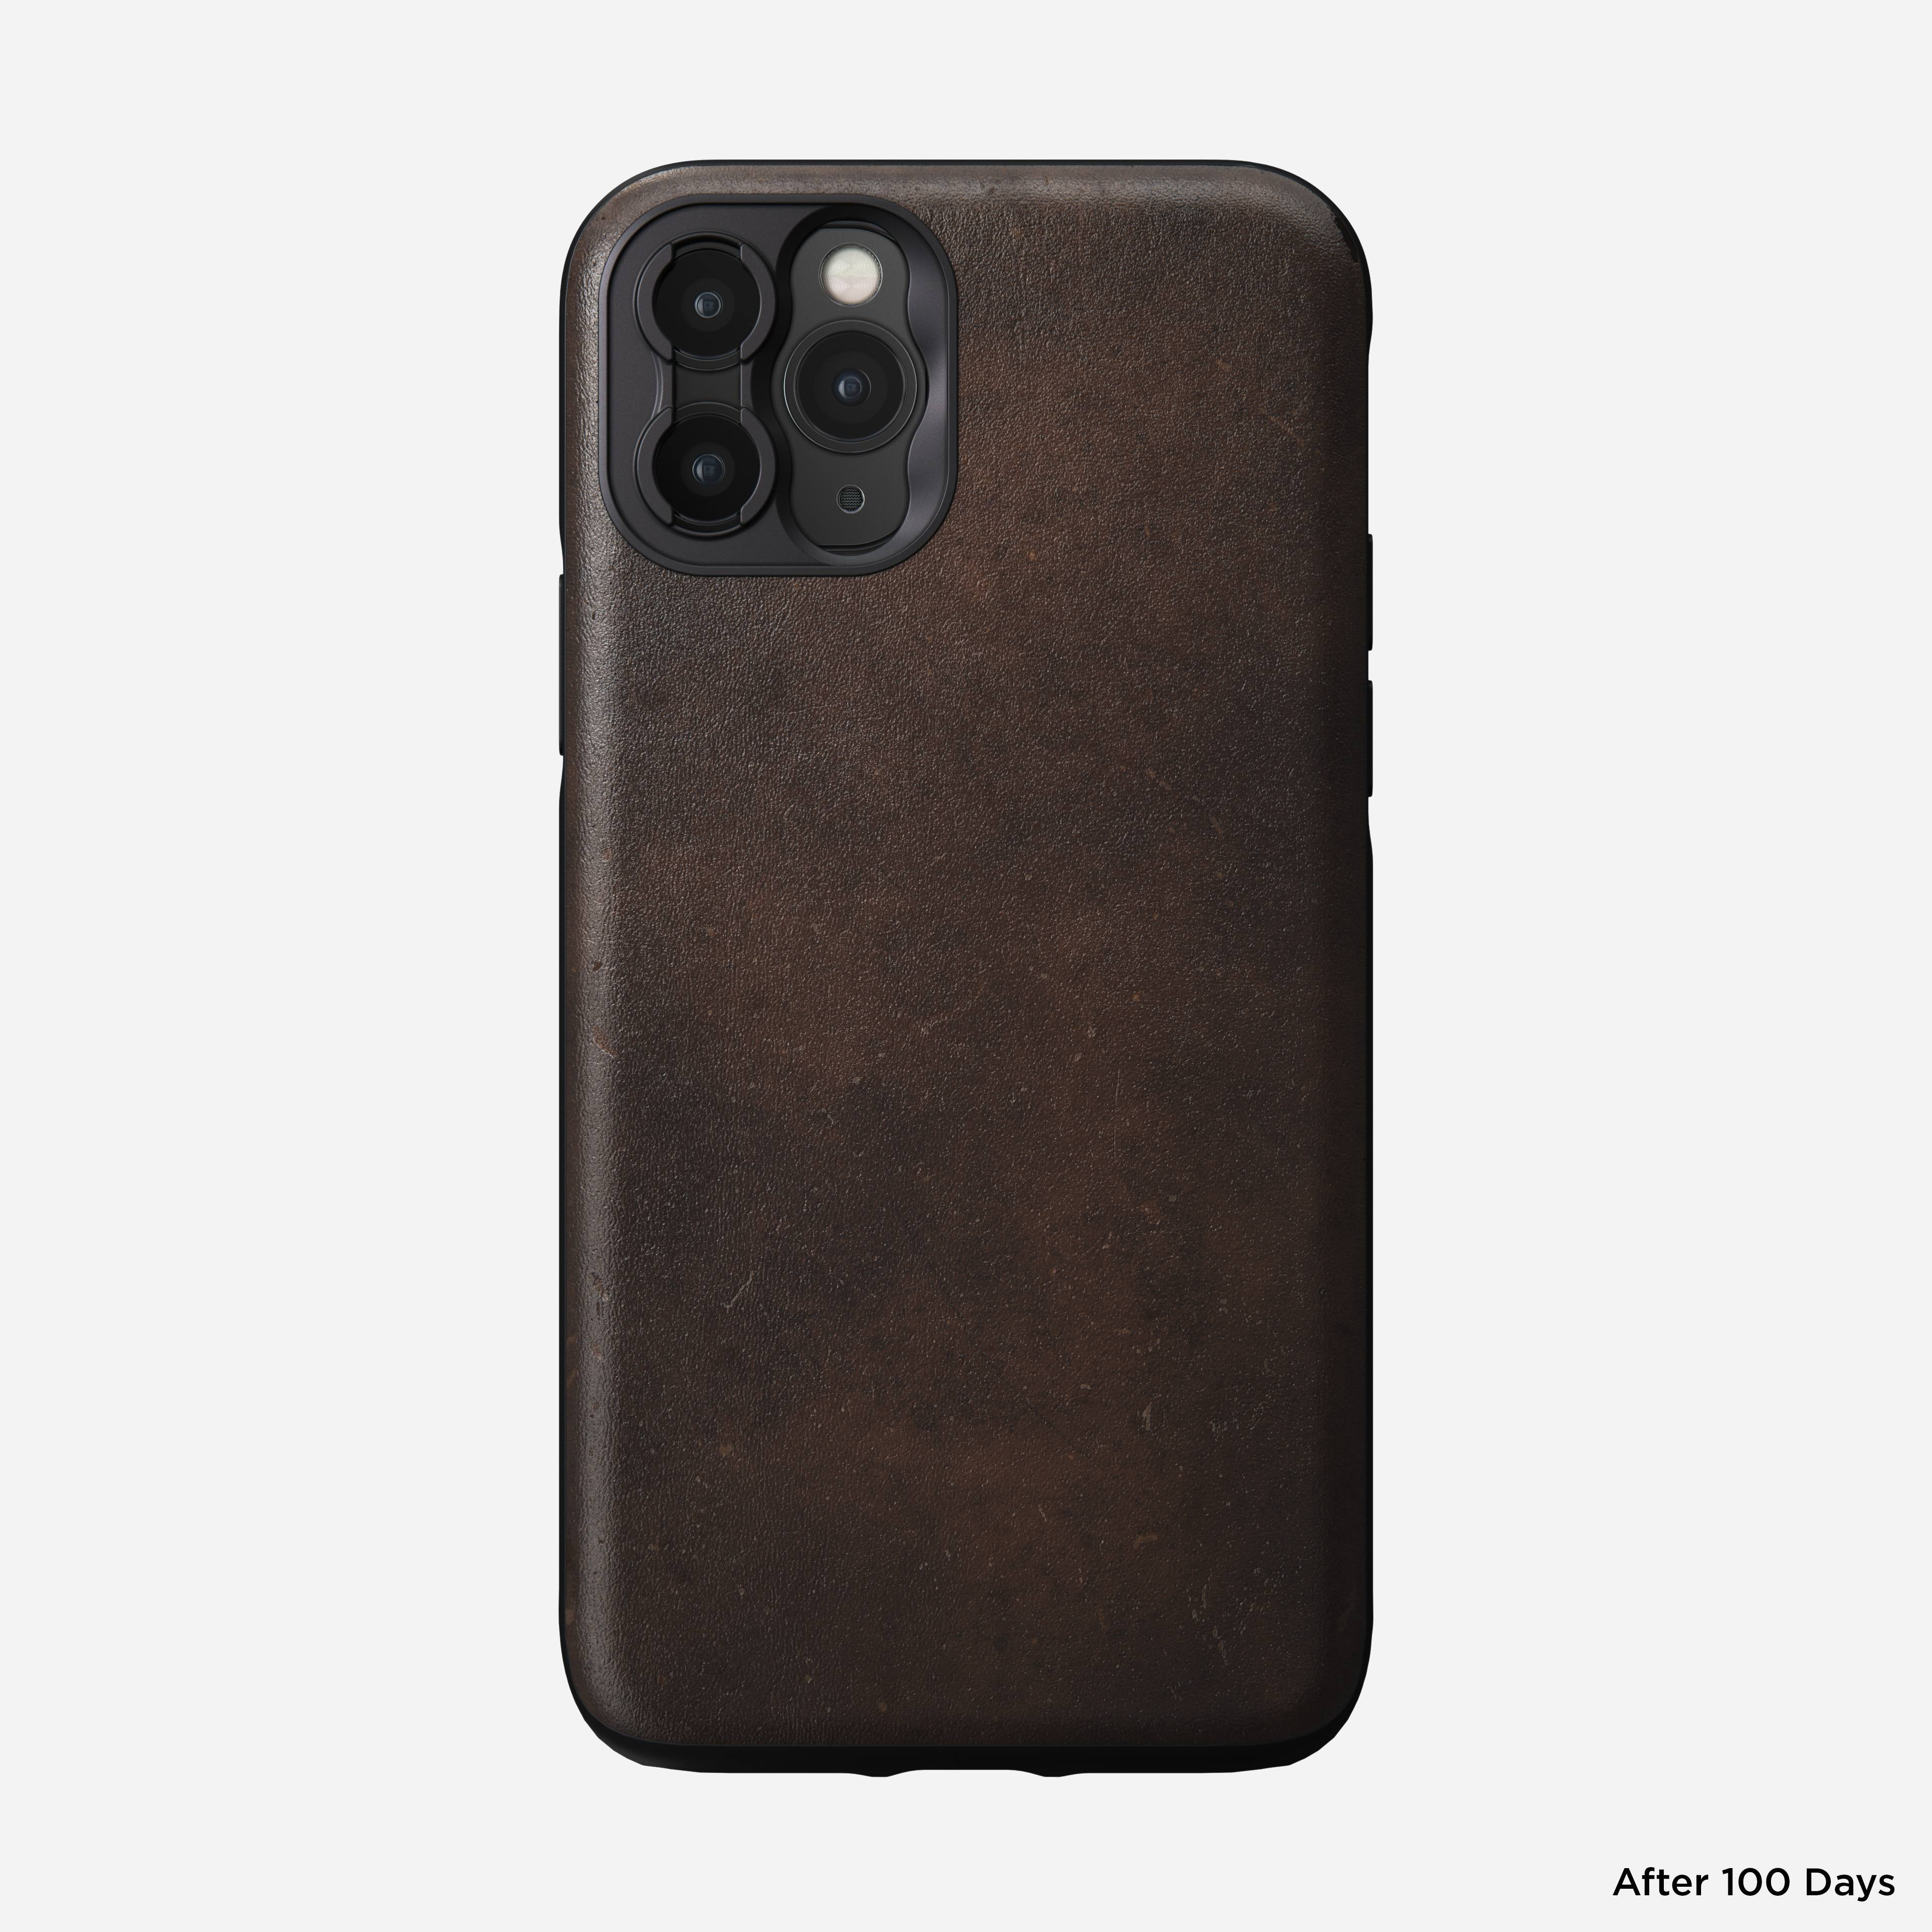 Rugged case rustic brown moment 11 pro